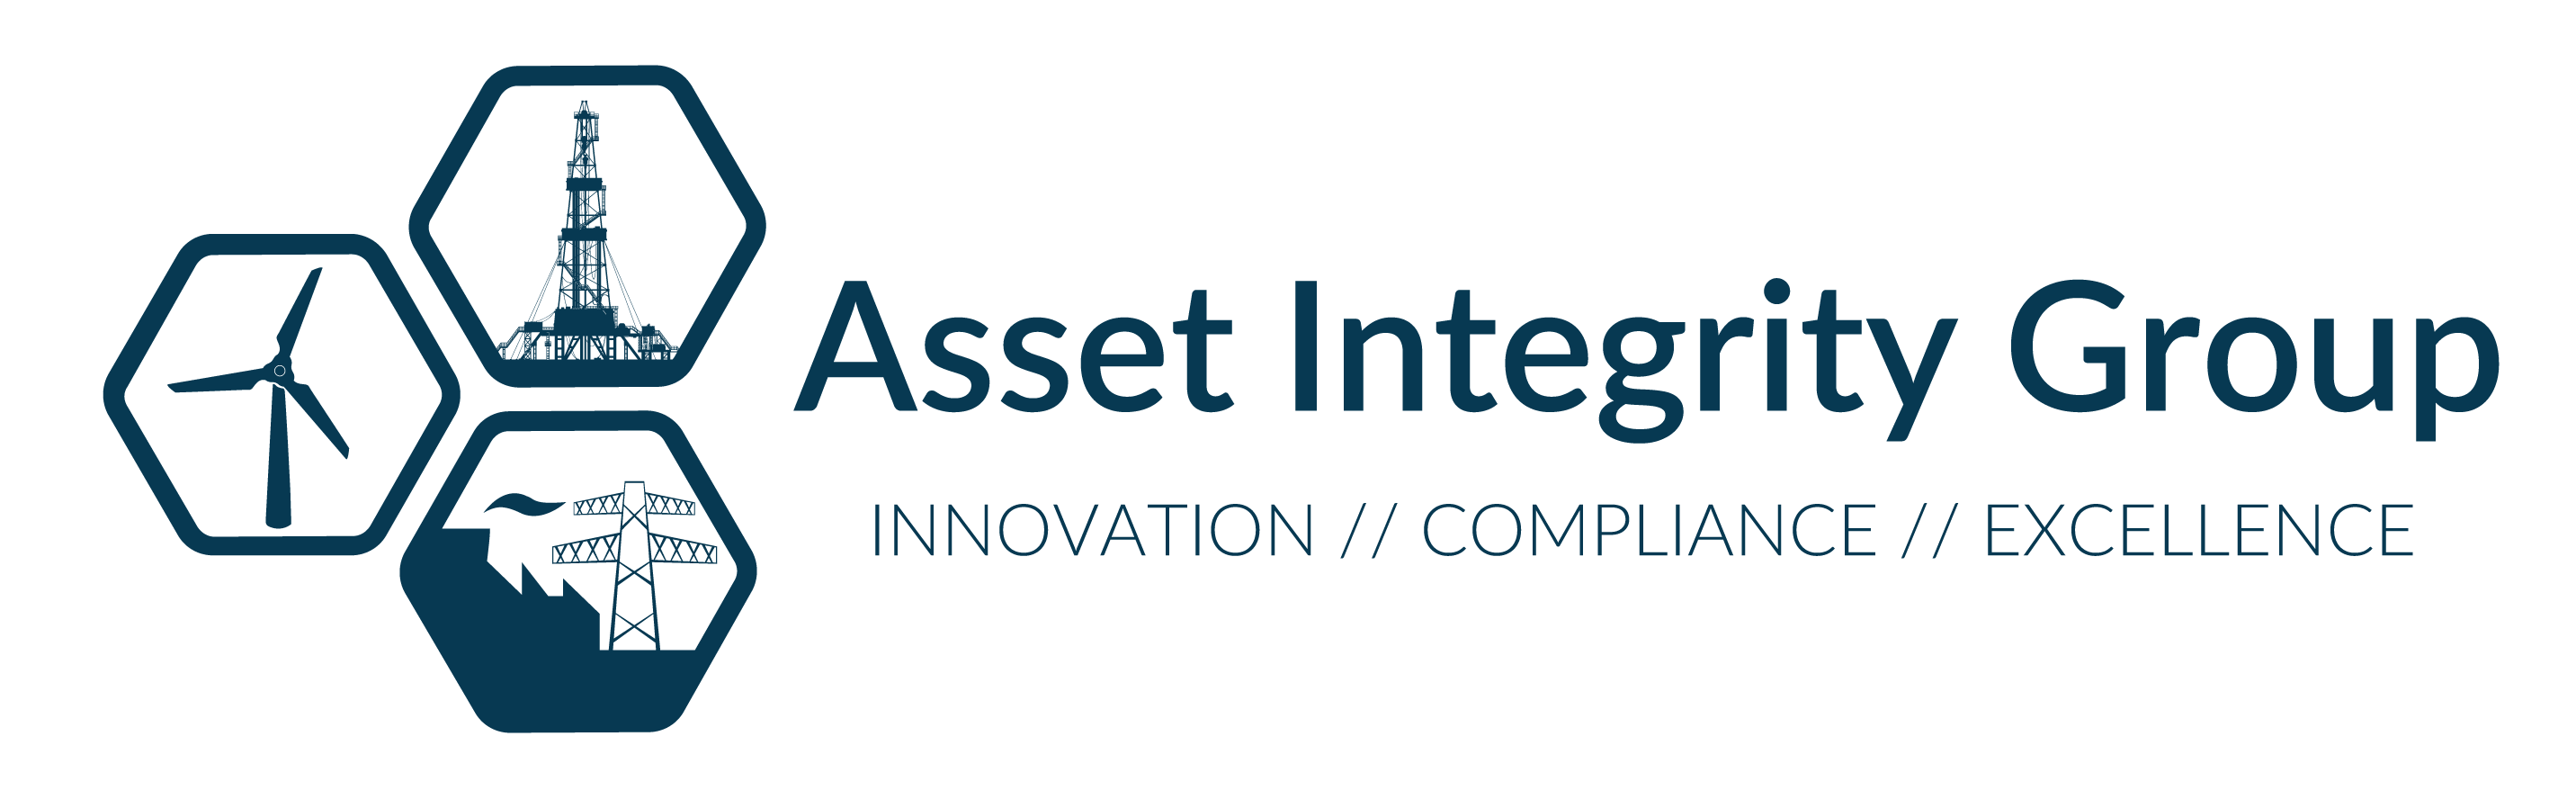 Asset Integrity Group